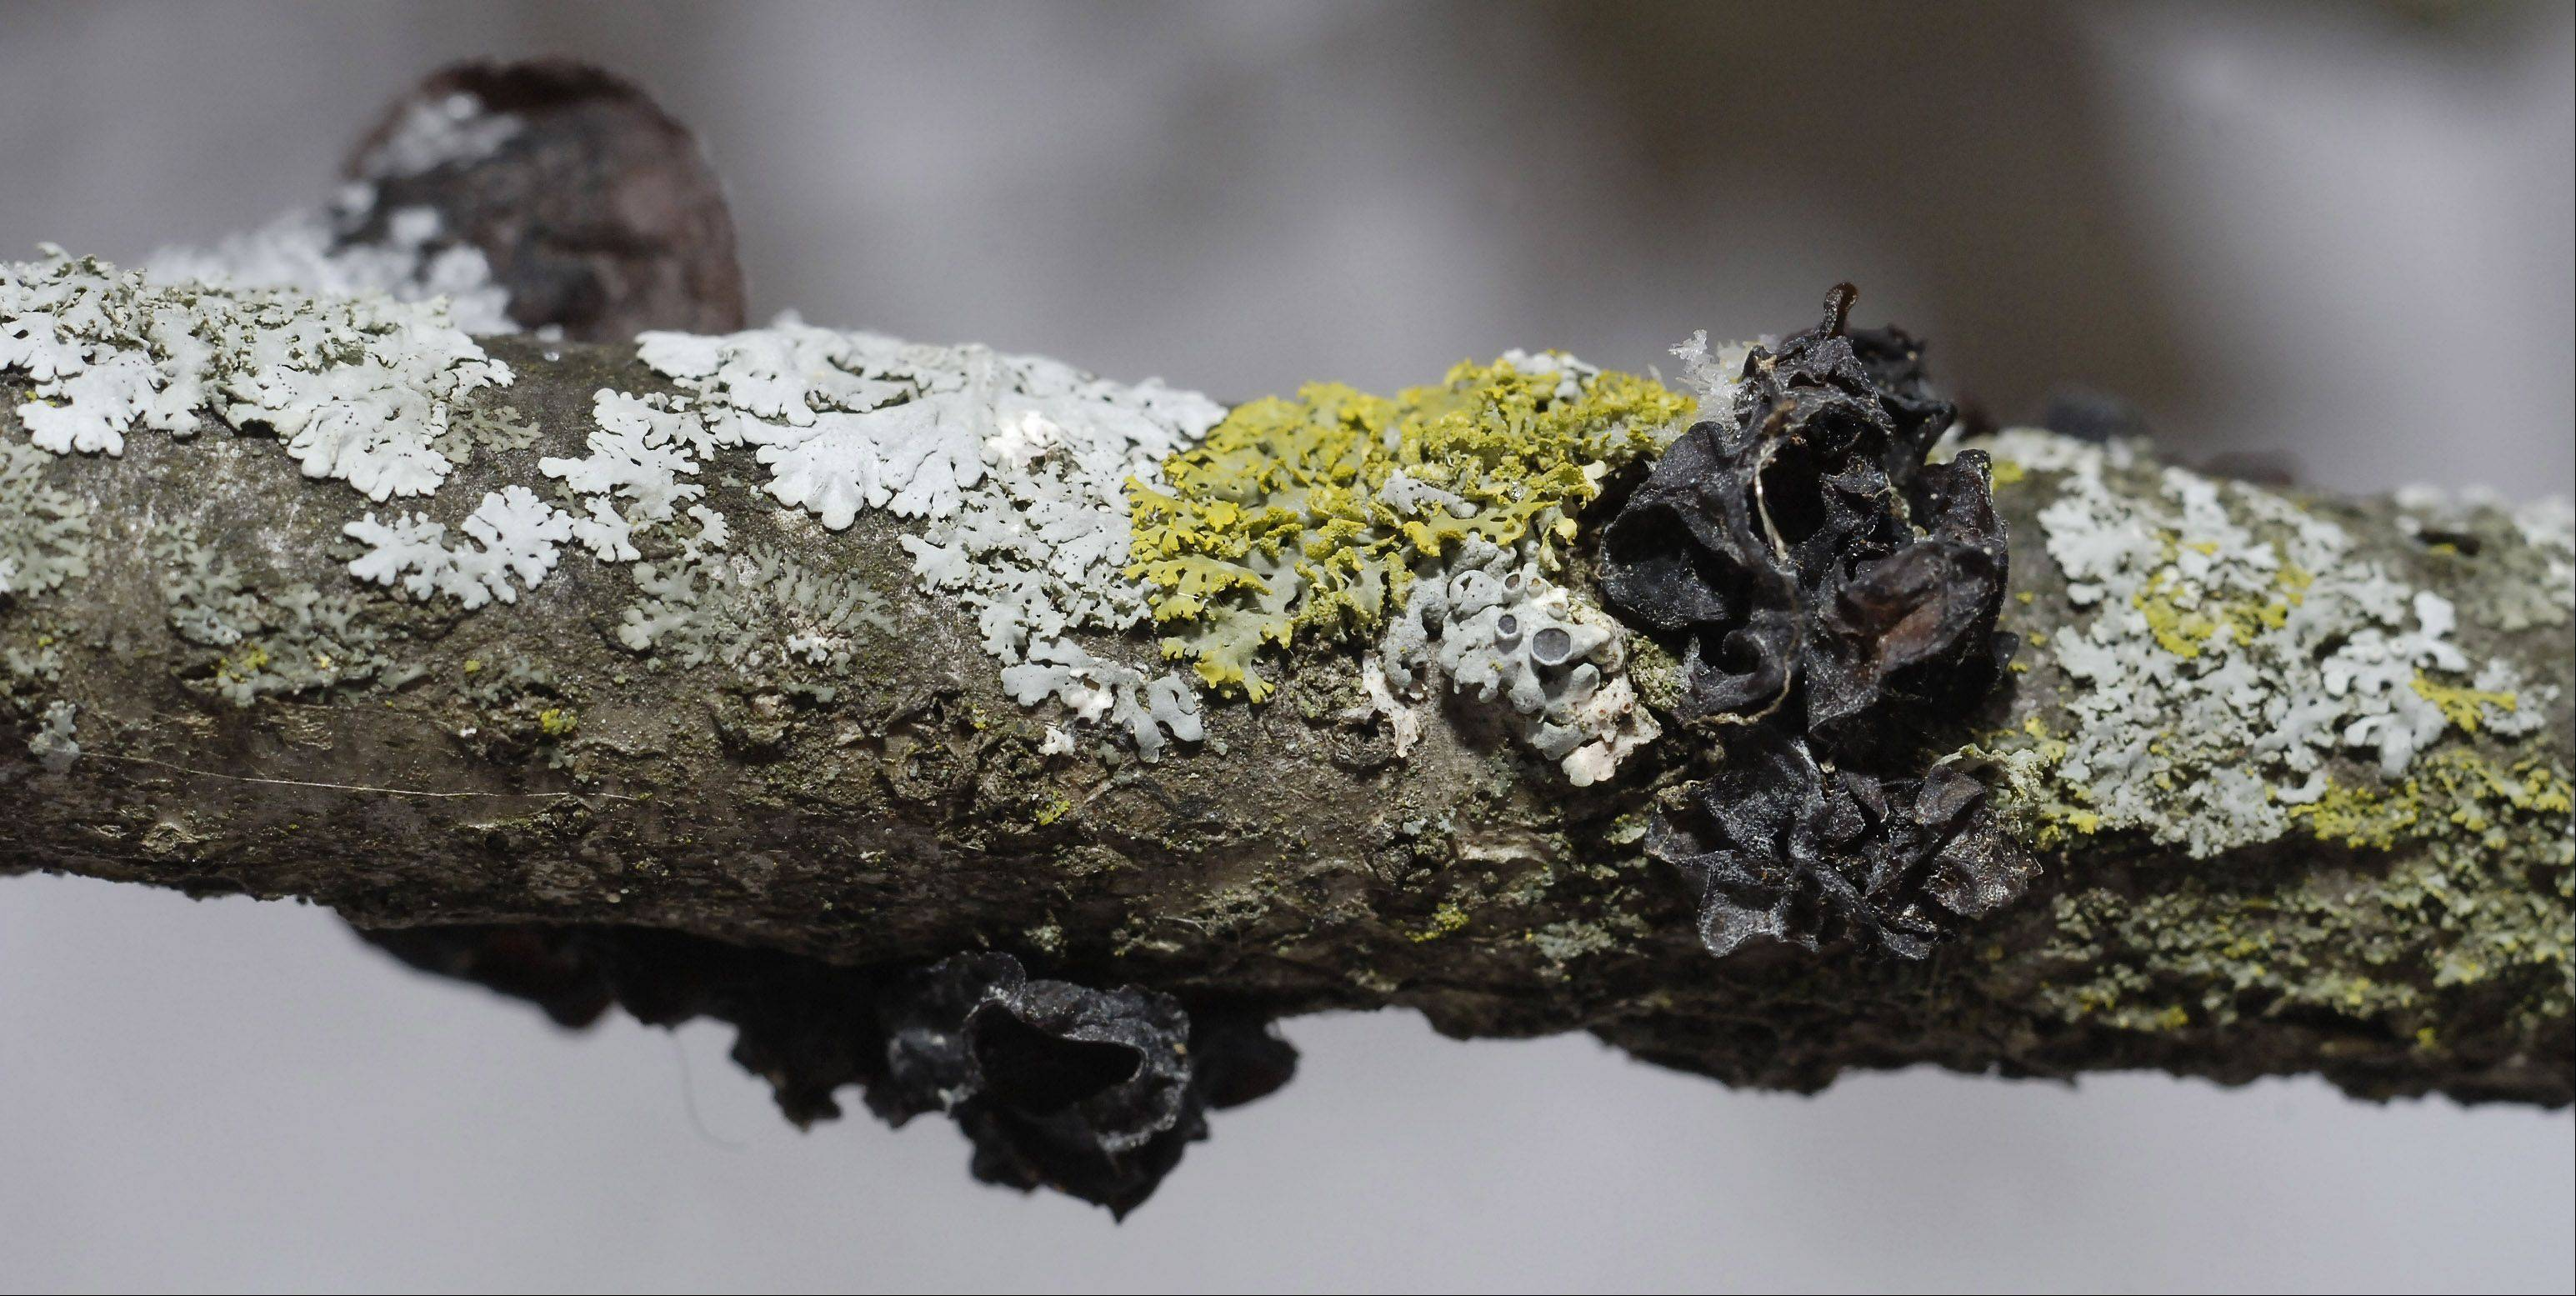 Lichen and jelly fungus share a tree branch at Tekakwitha Woods in St. Charles. The gray-colored lichen is called Physcia millegrana, the orangish-greenish is Candelaria concolor. Jelly fungus is the wavy brown gelatinous growth on far right, which is called Tremella foliacea.